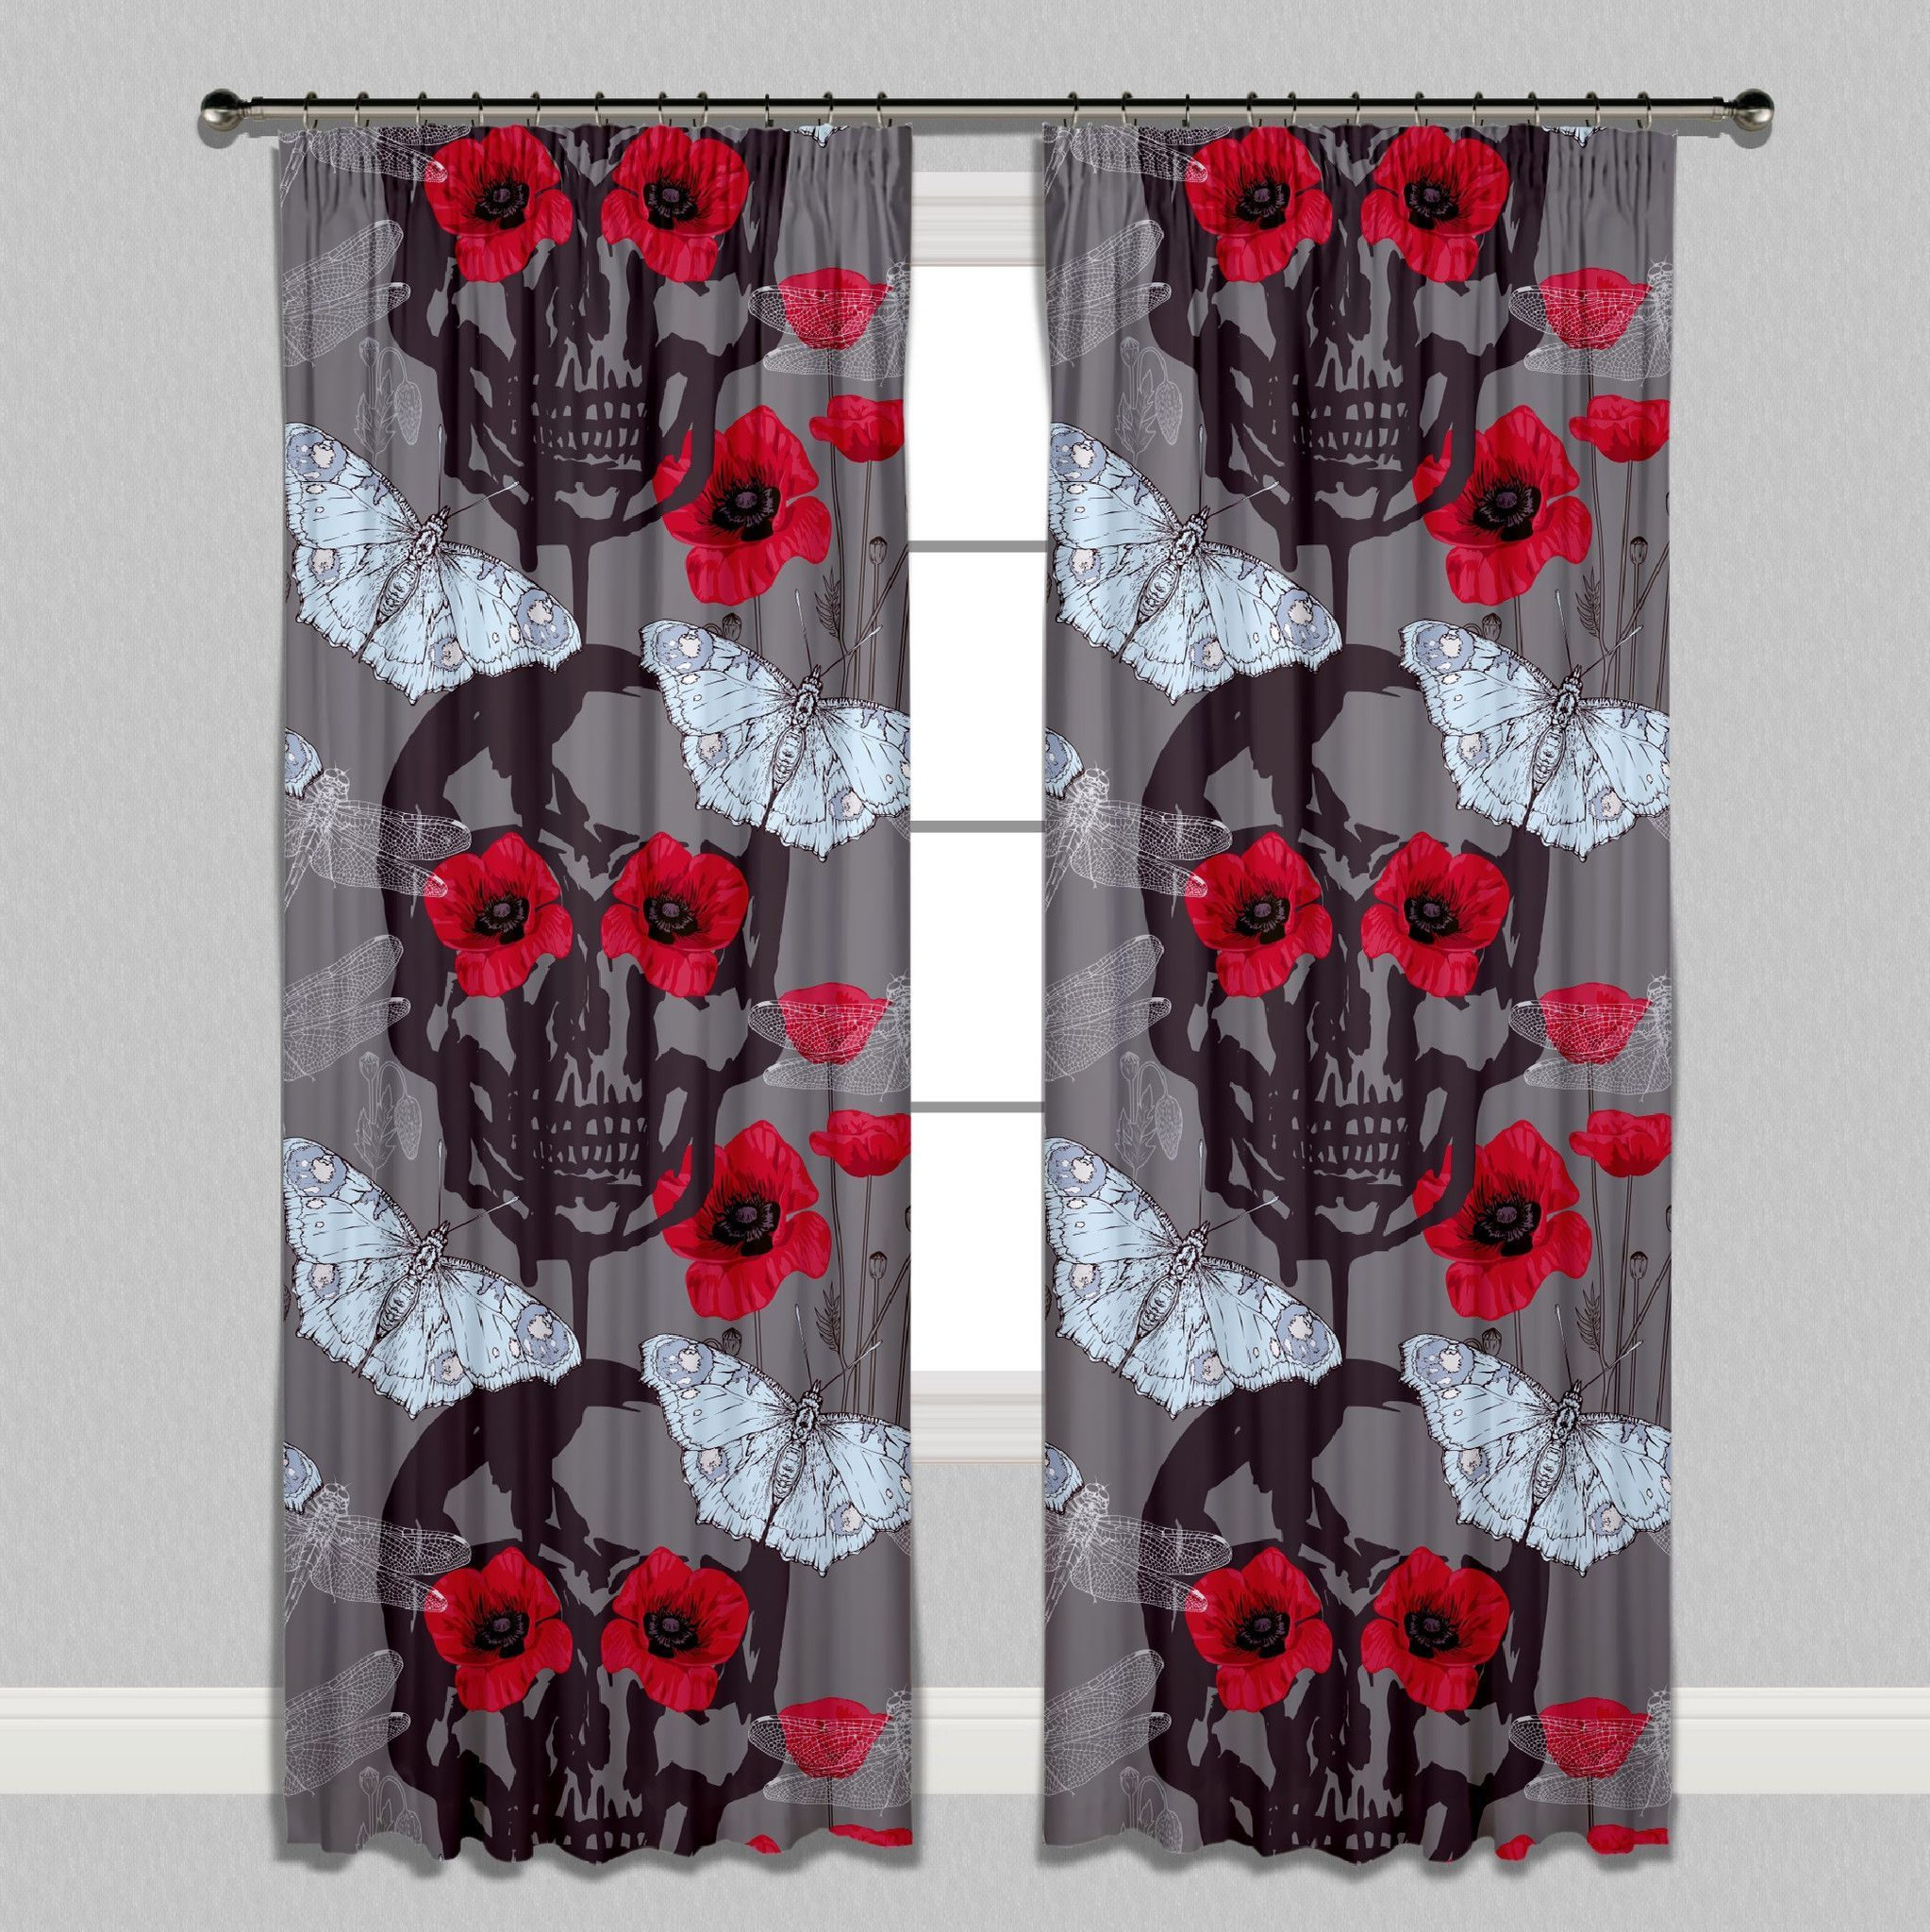 Red Poppy Skull Curtains or Sheers